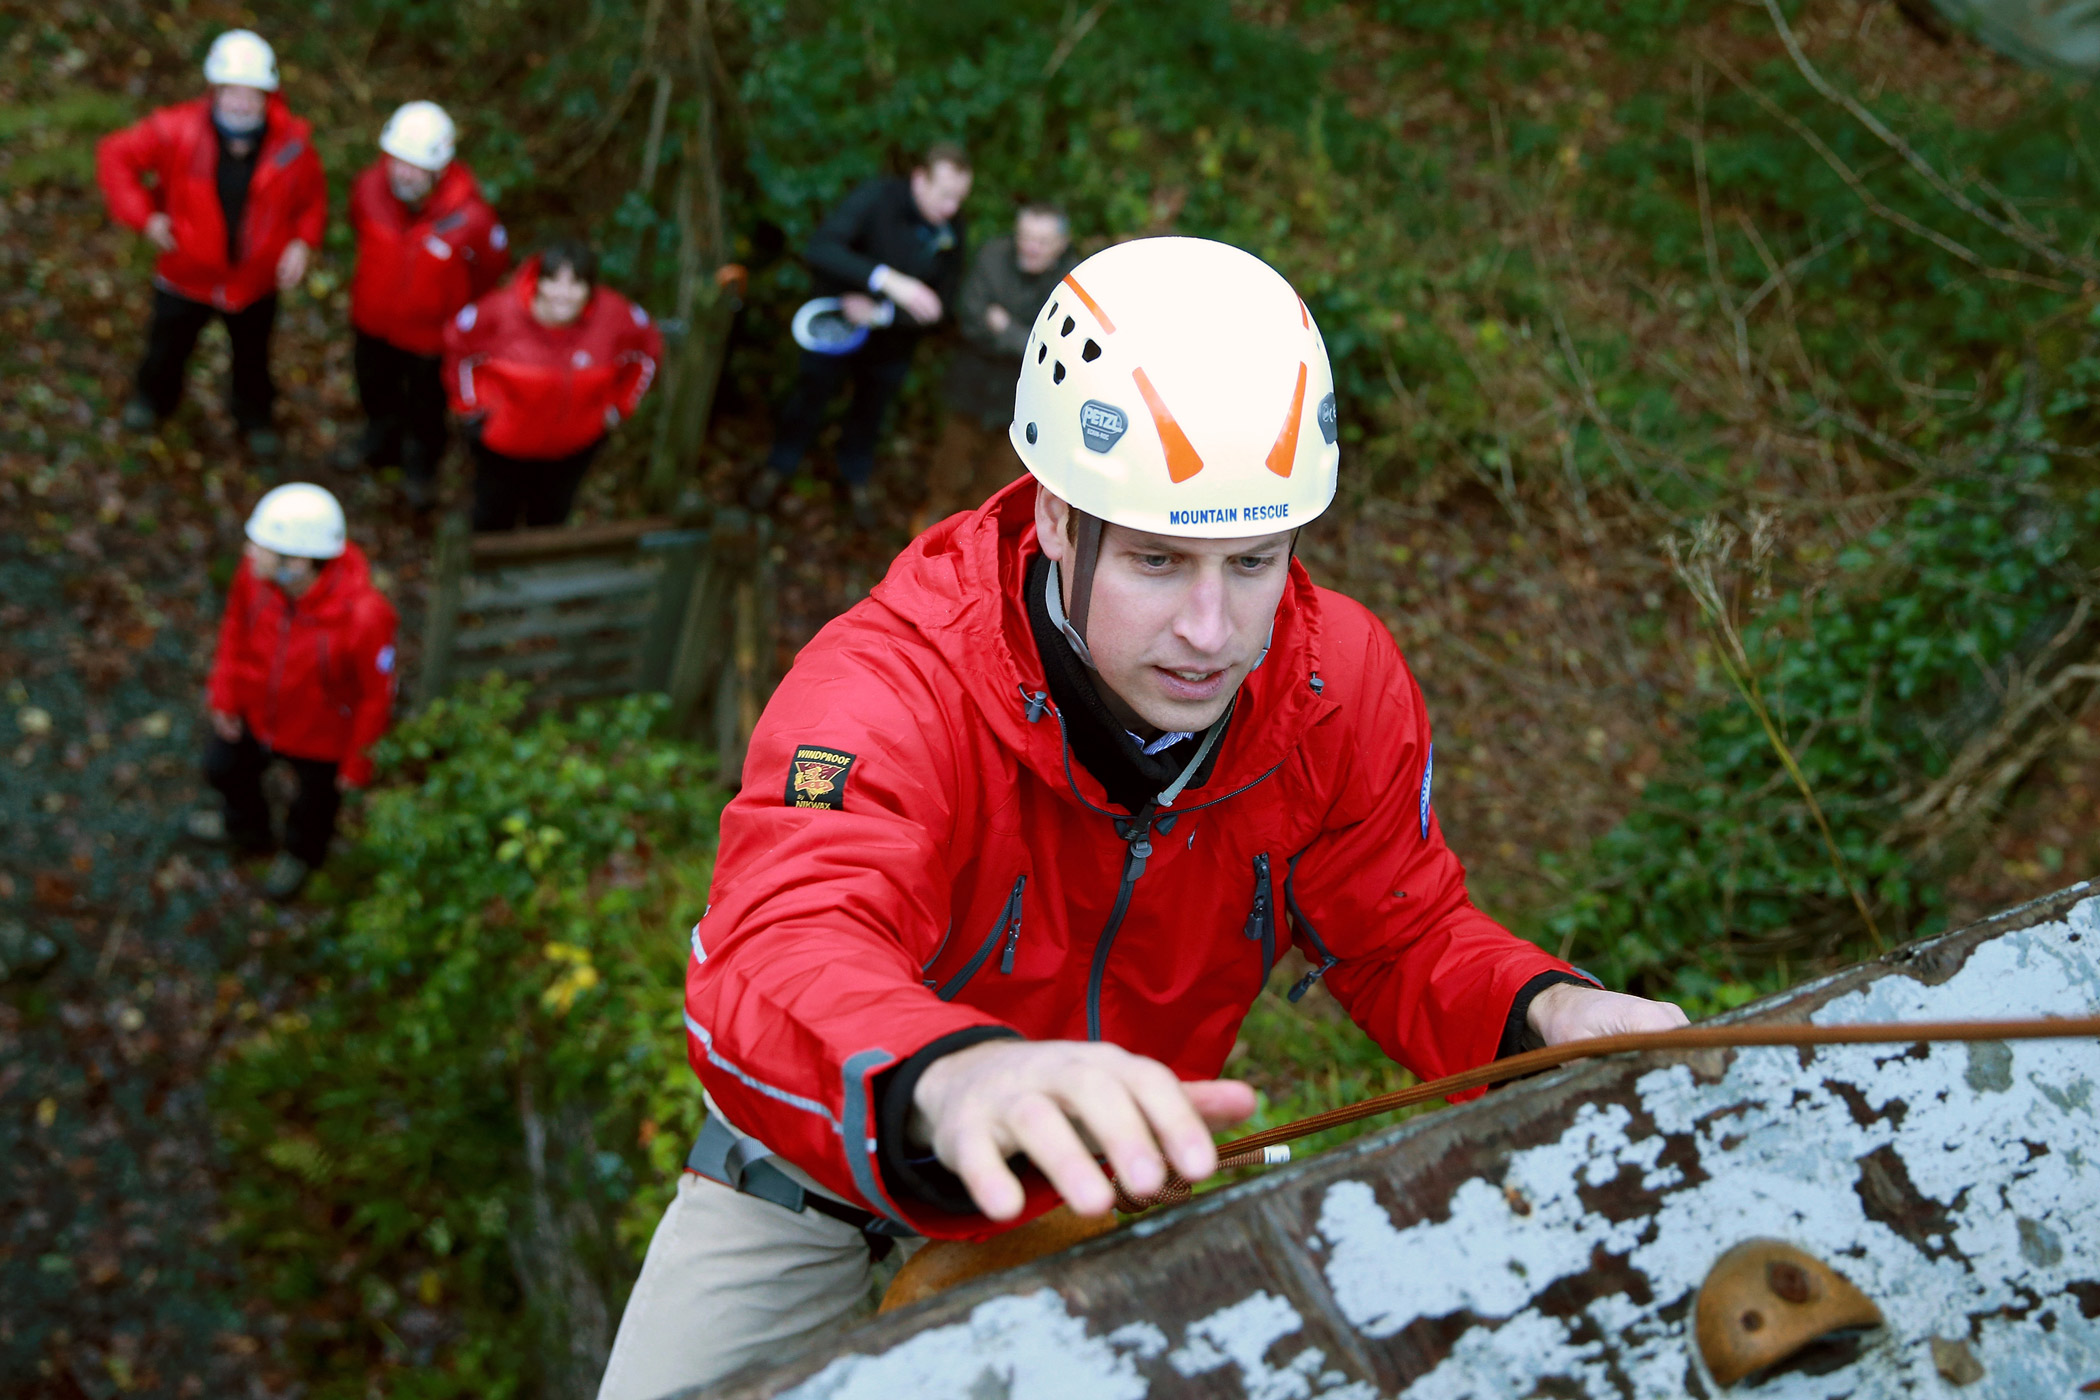 The Duke climbs up a wall at Towers Residential Outdoor Education Centre on Nov. 20, 2015.